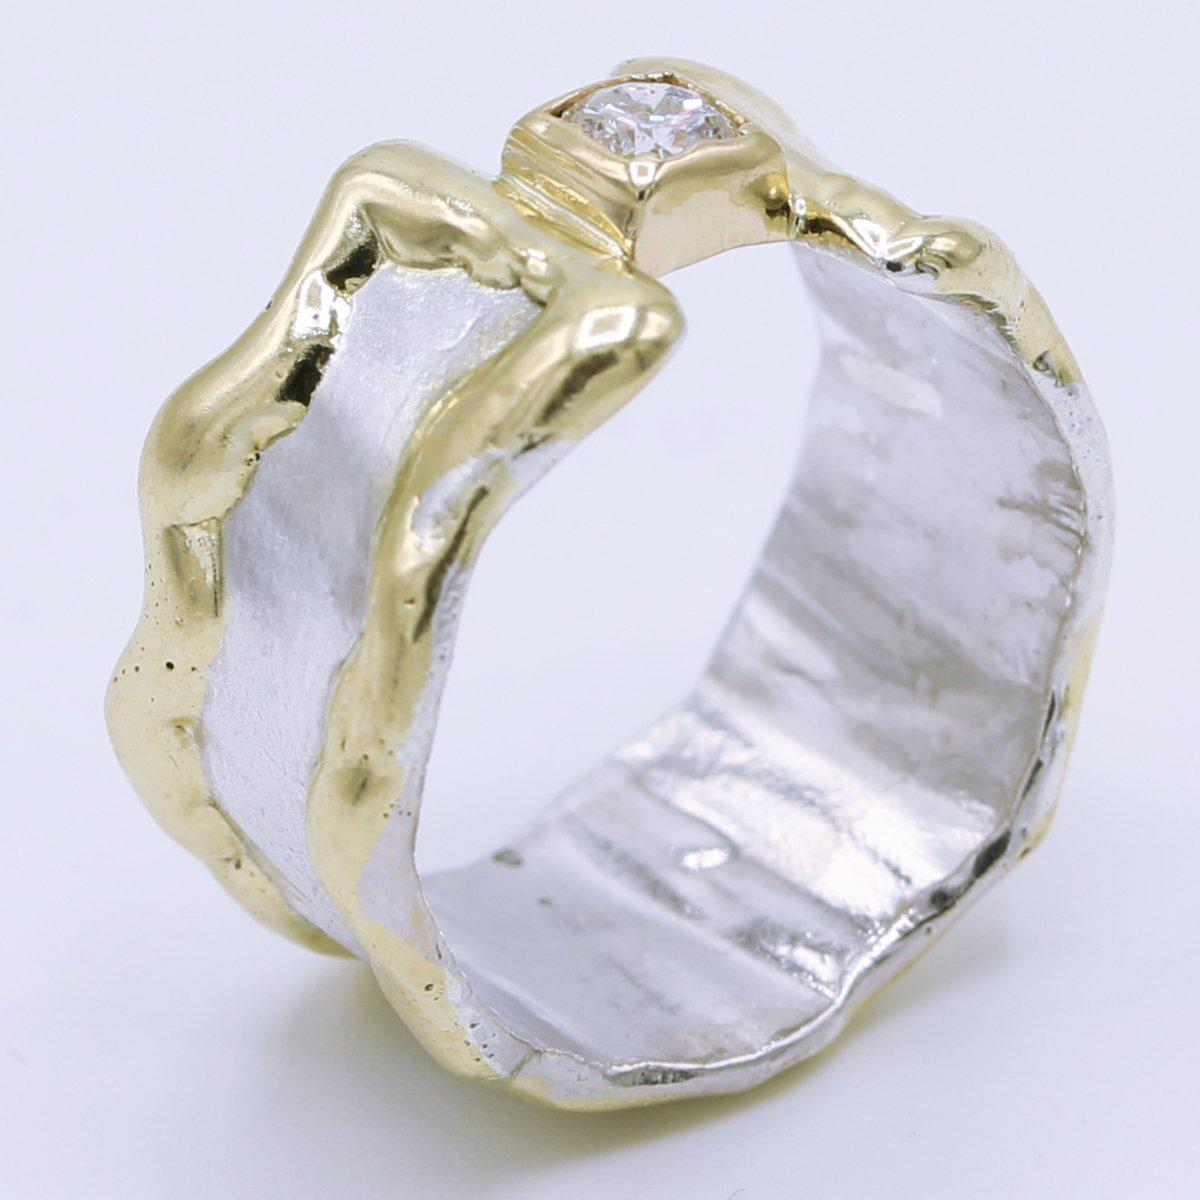 14K Gold & Crystalline Silver Diamond Ring - 34894-Fusion Designs-Renee Taylor Gallery